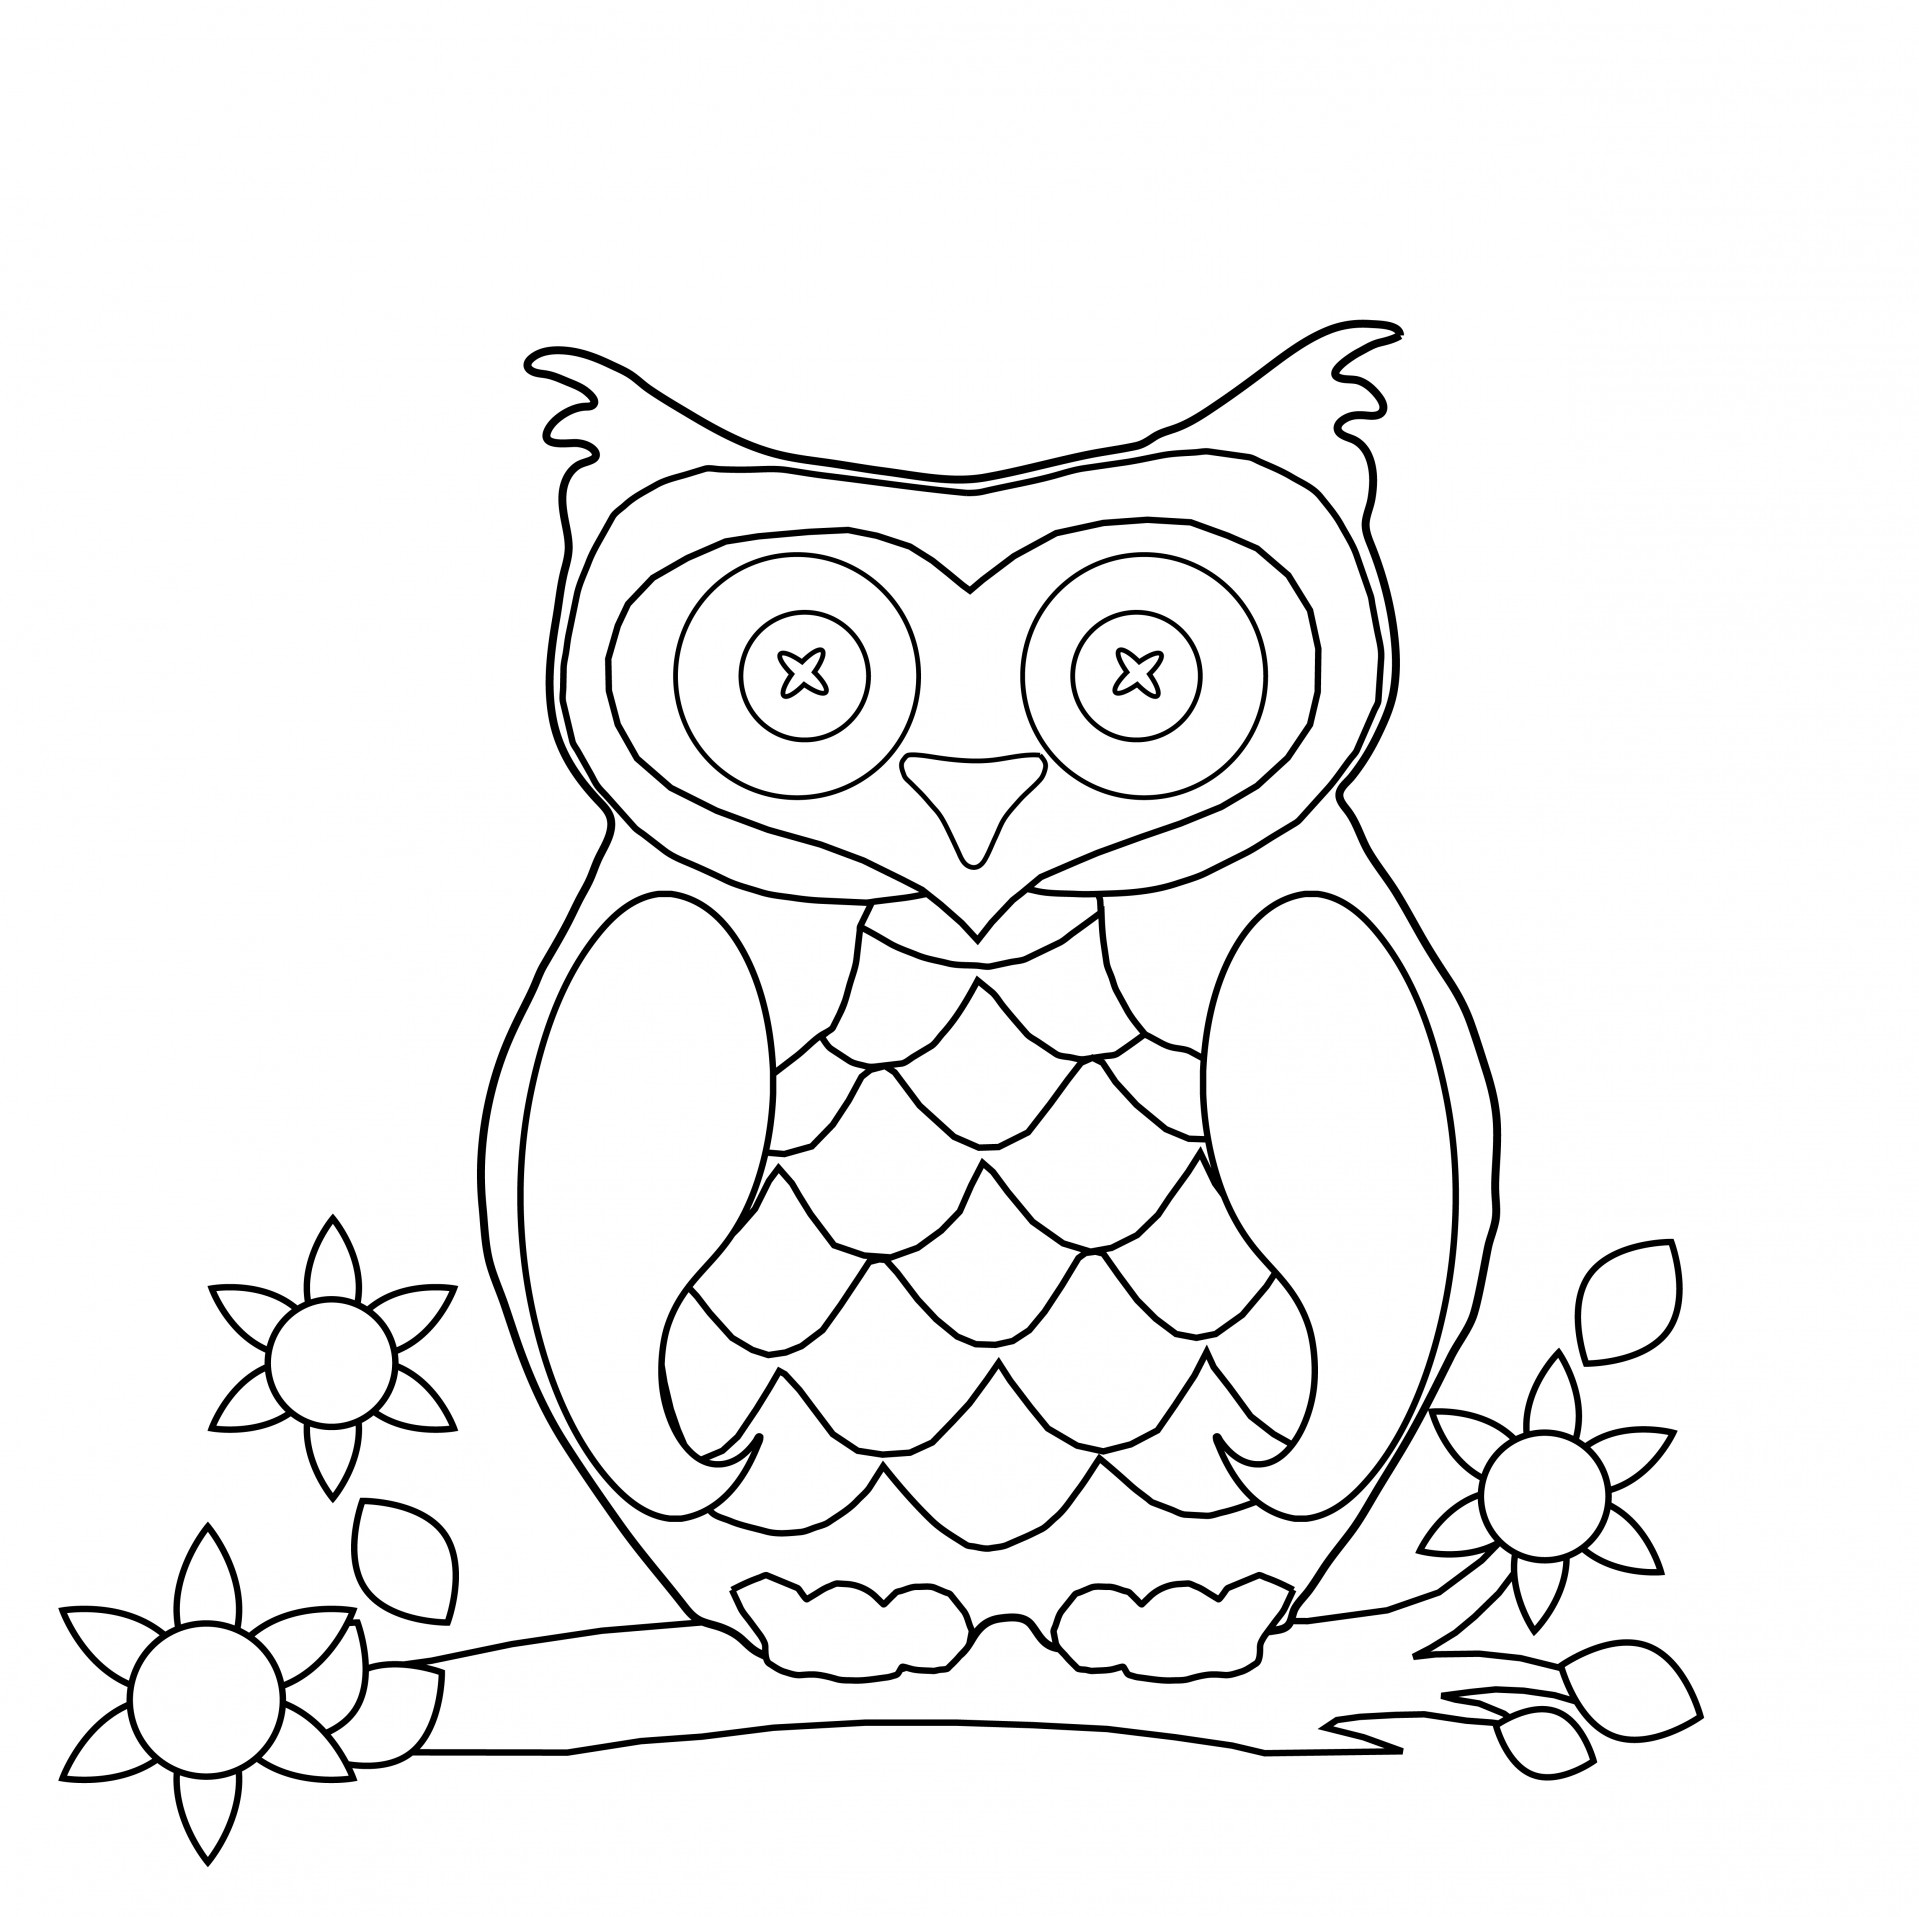 free easy coloring pages free printable preschool coloring pages best coloring free pages easy coloring